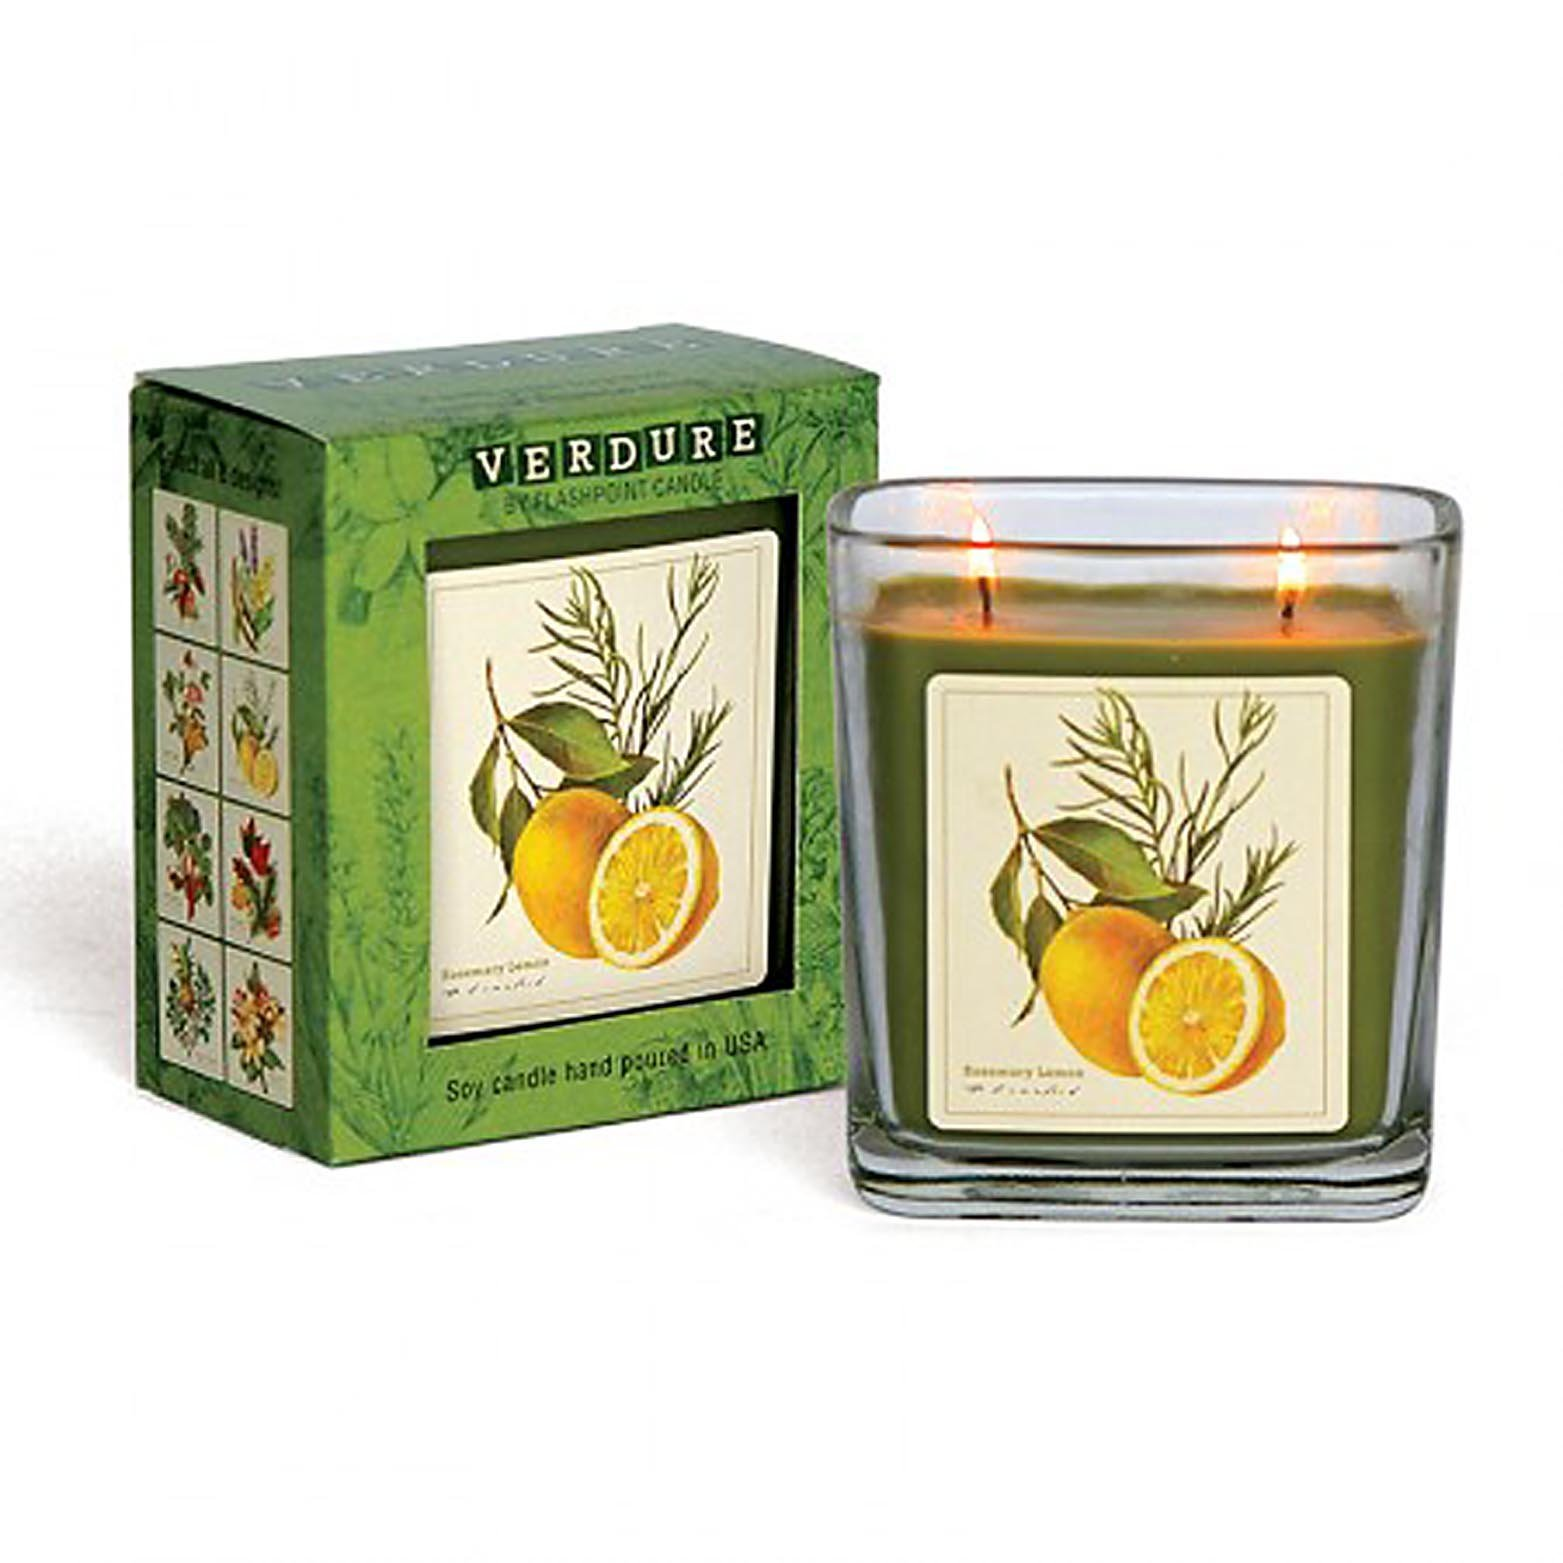 Verdure Soy Double Wick Candle Hand Poured in USA Boxed Gift (Rosemary Lemon)